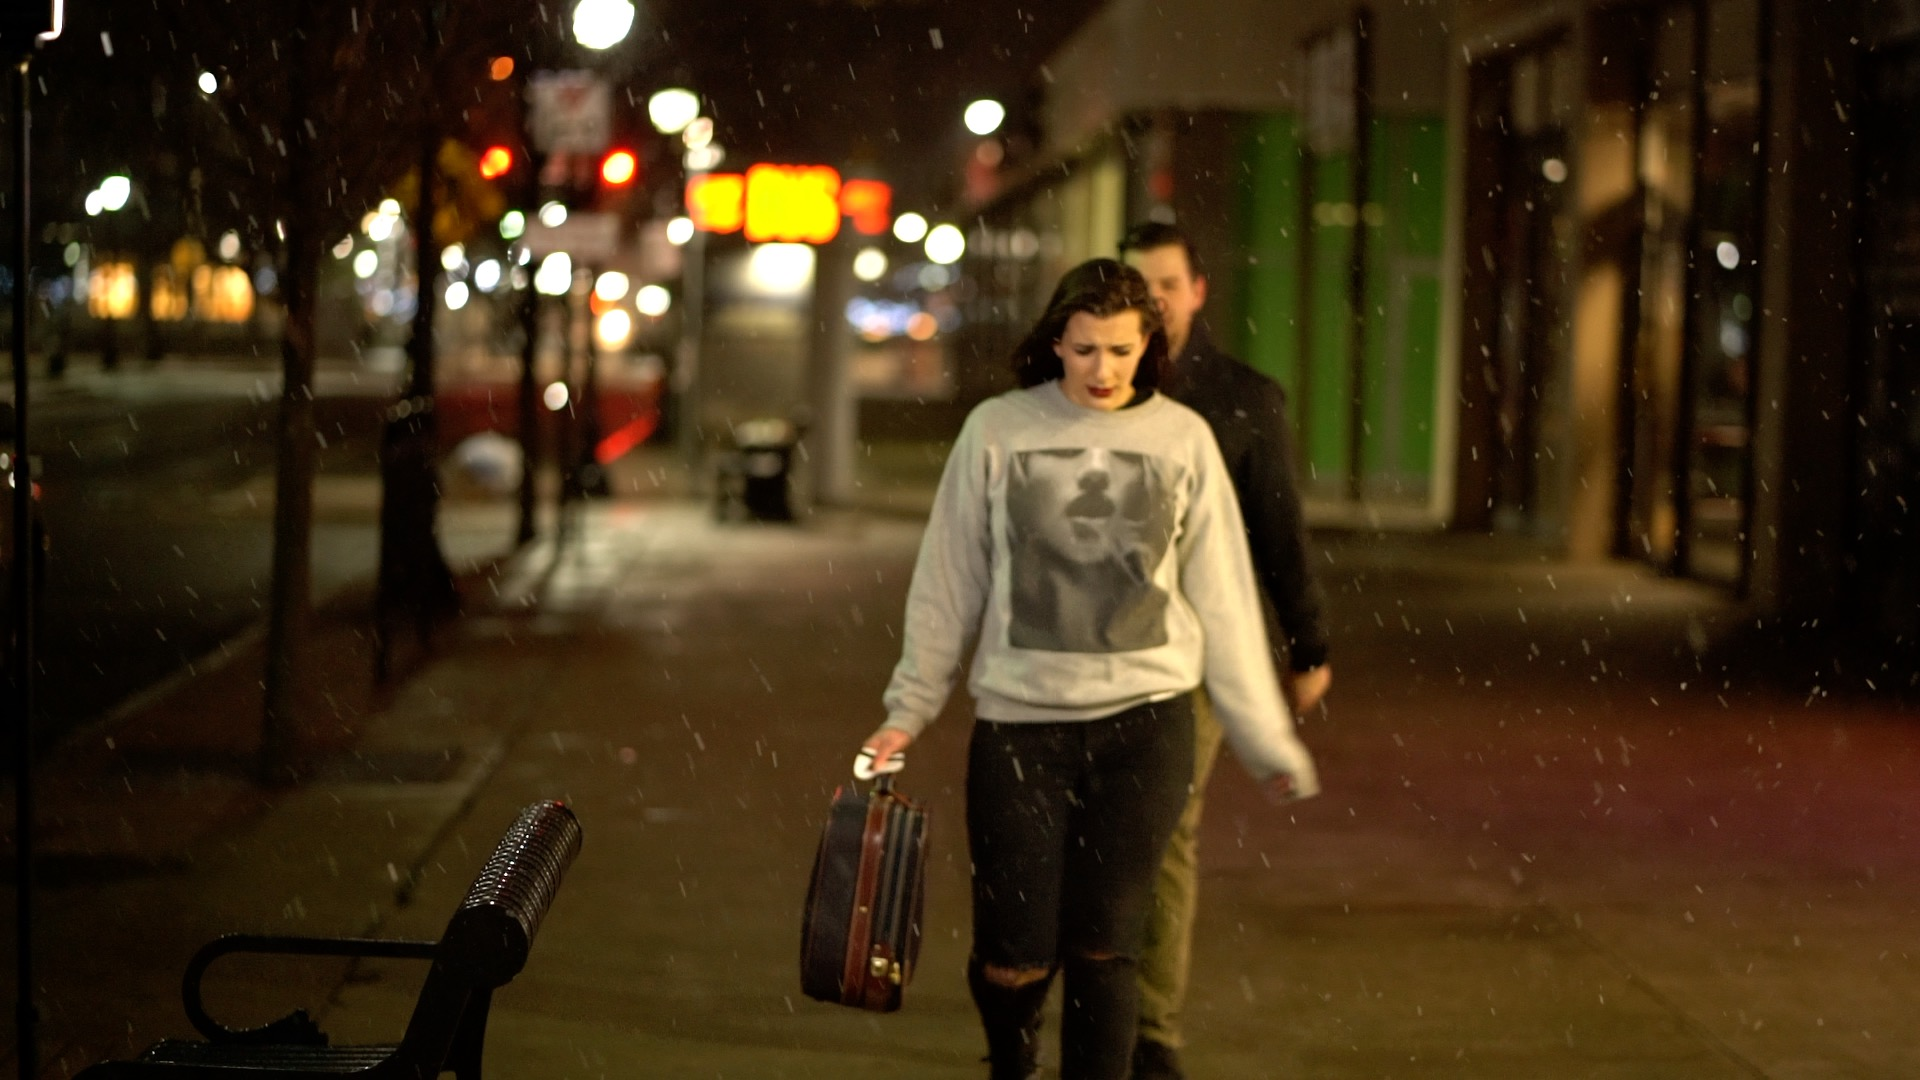 ayla walks away from mike